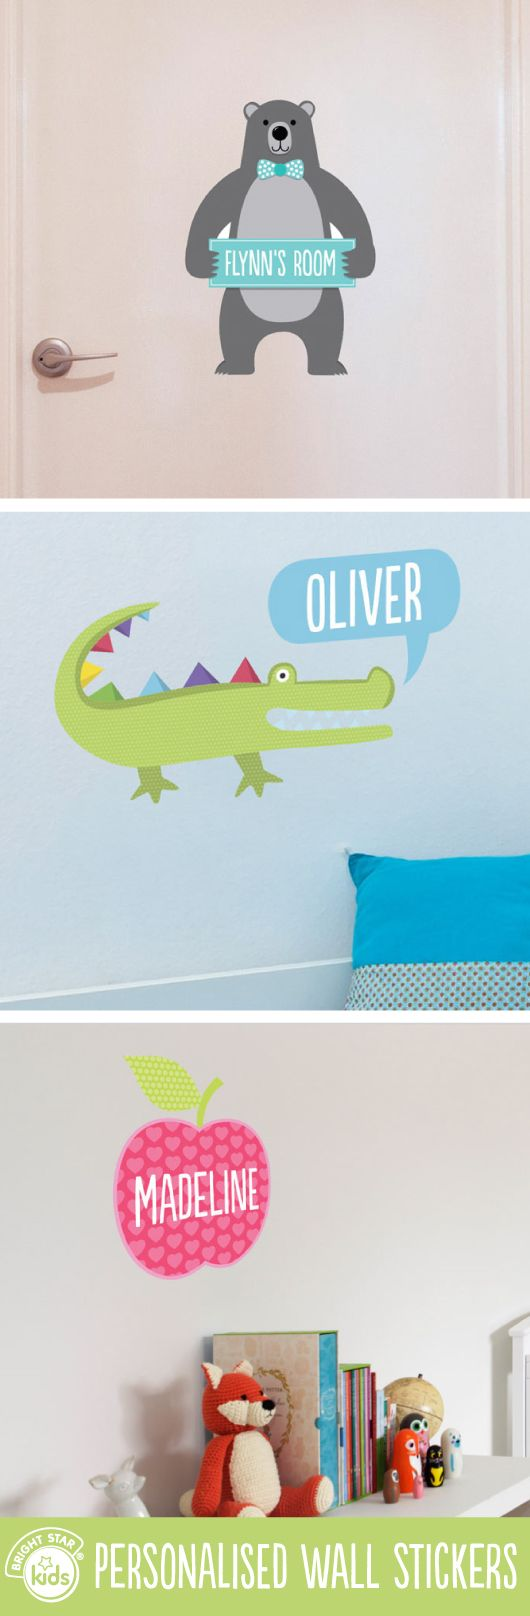 best 25 personalised wall stickers ideas on pinterest removable wall stickers make decorating girls and boys rooms easy